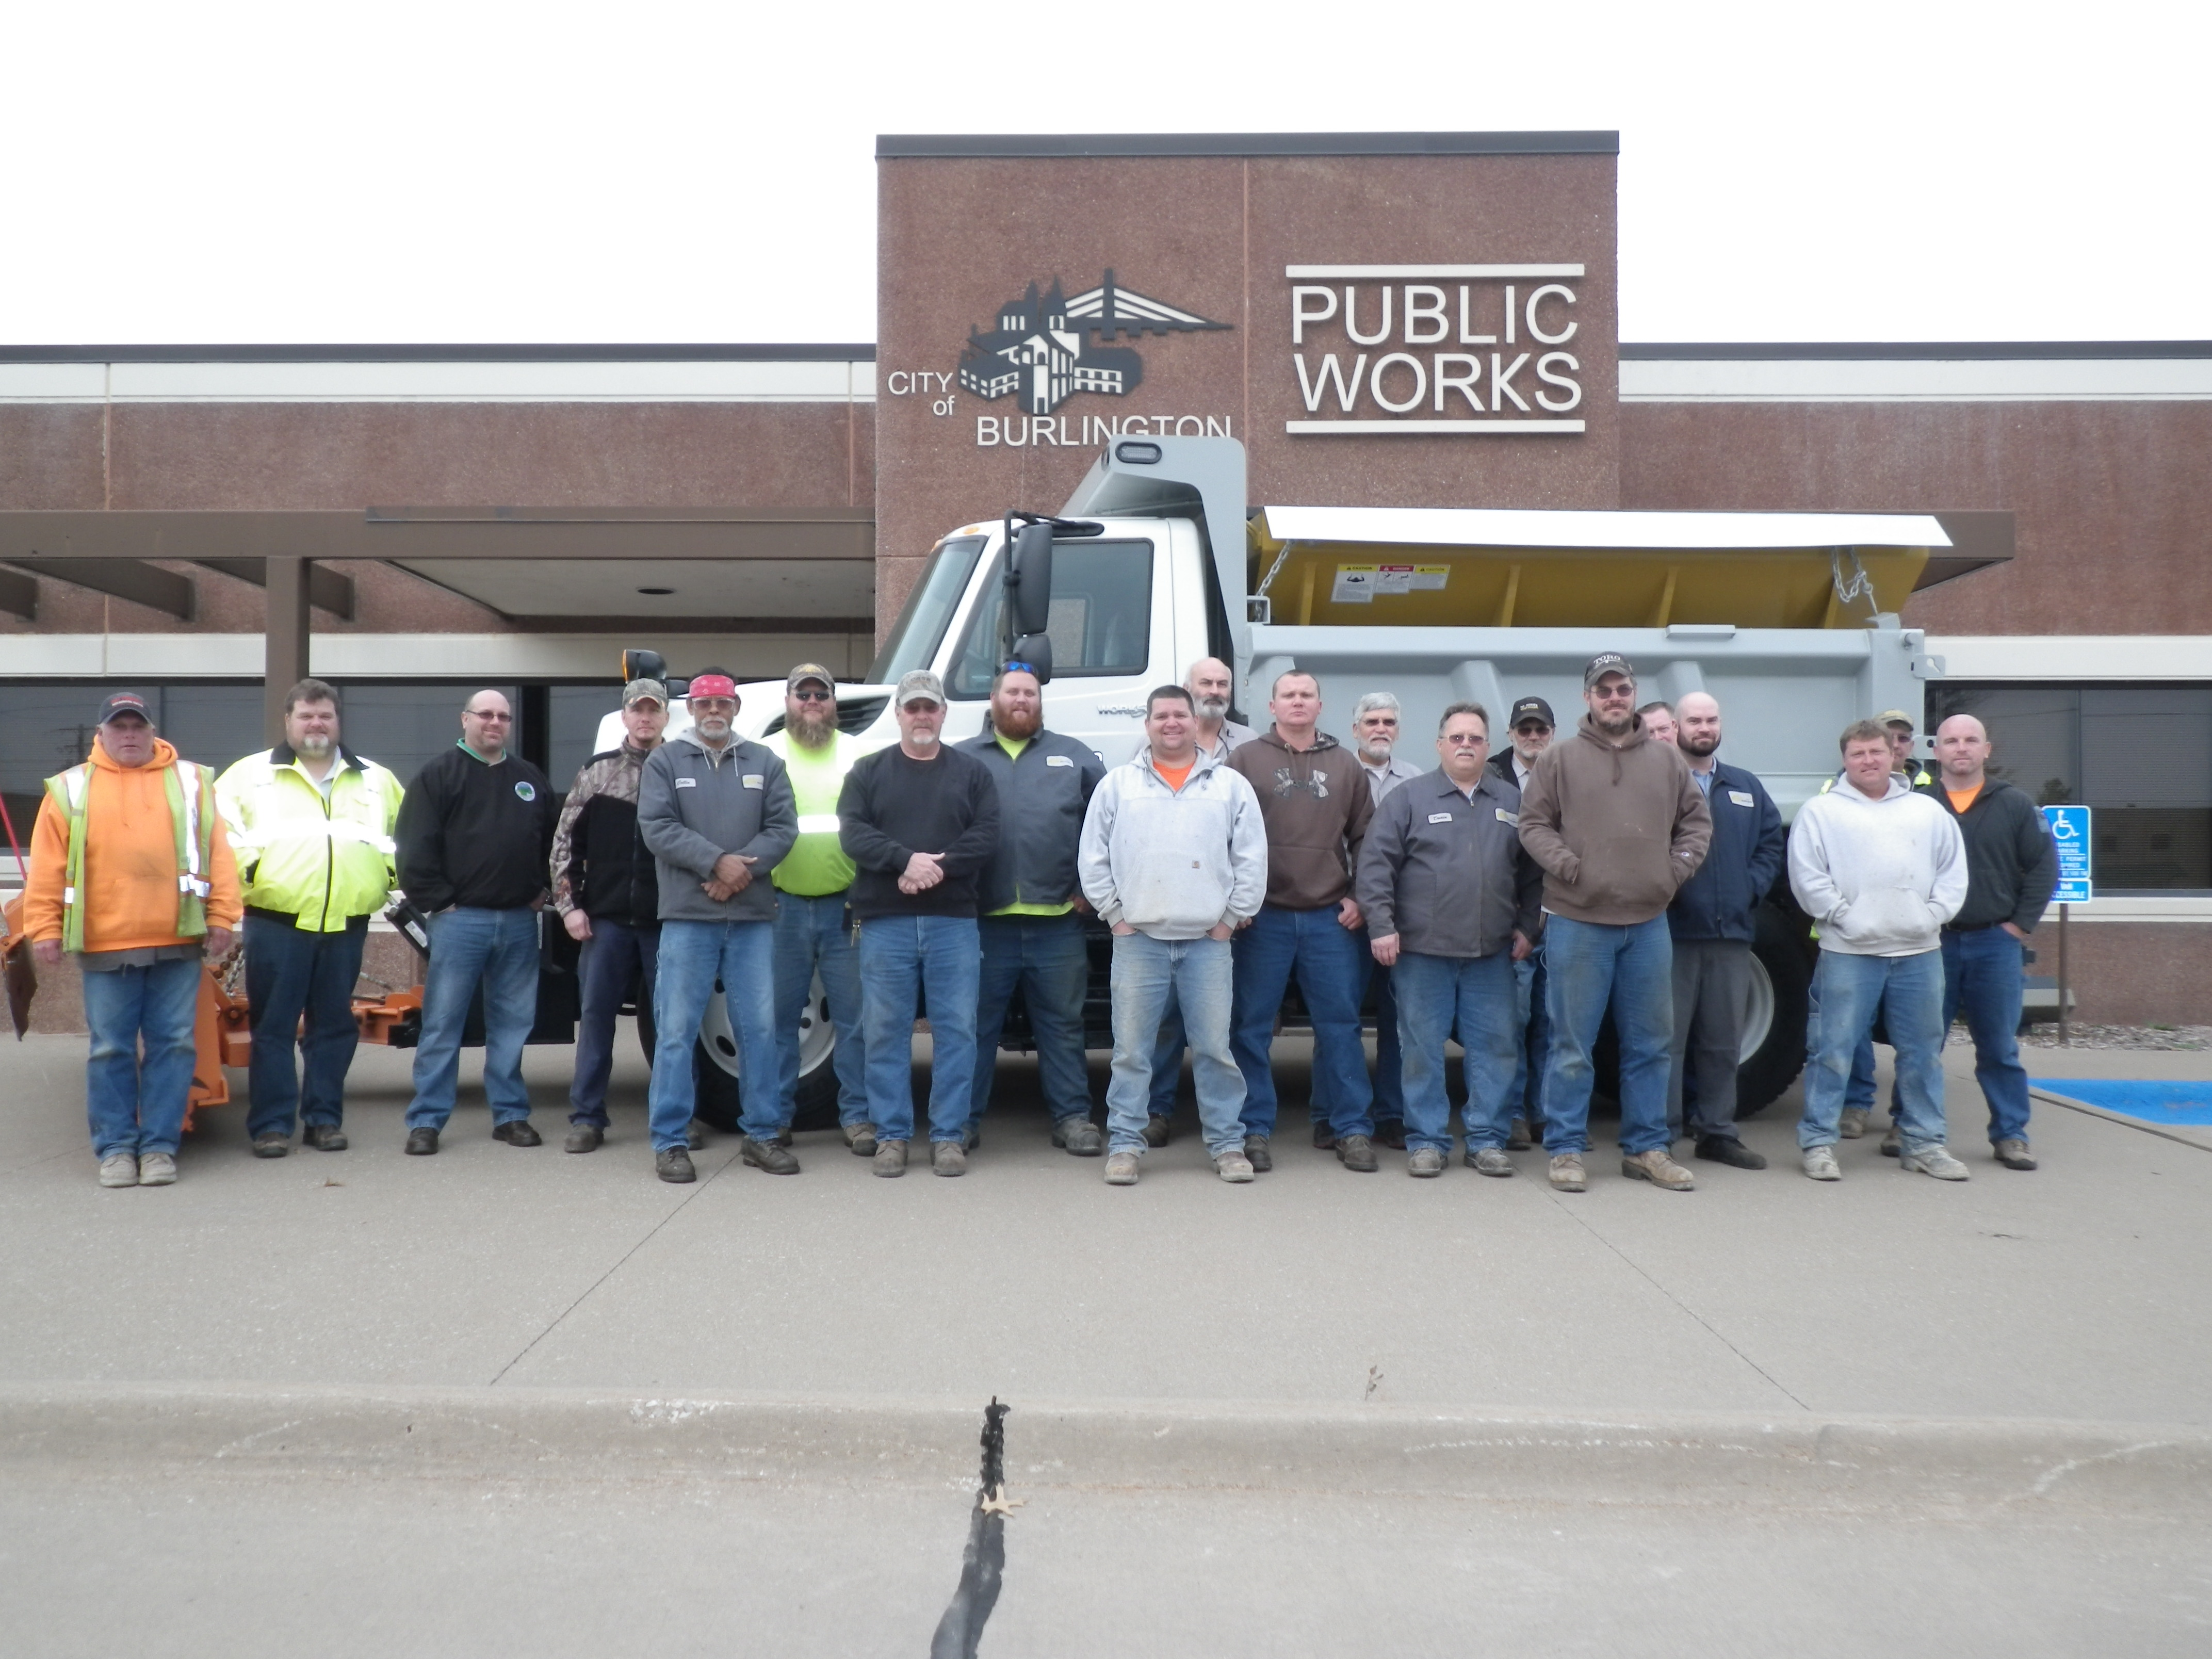 Public Works Department Group Photo